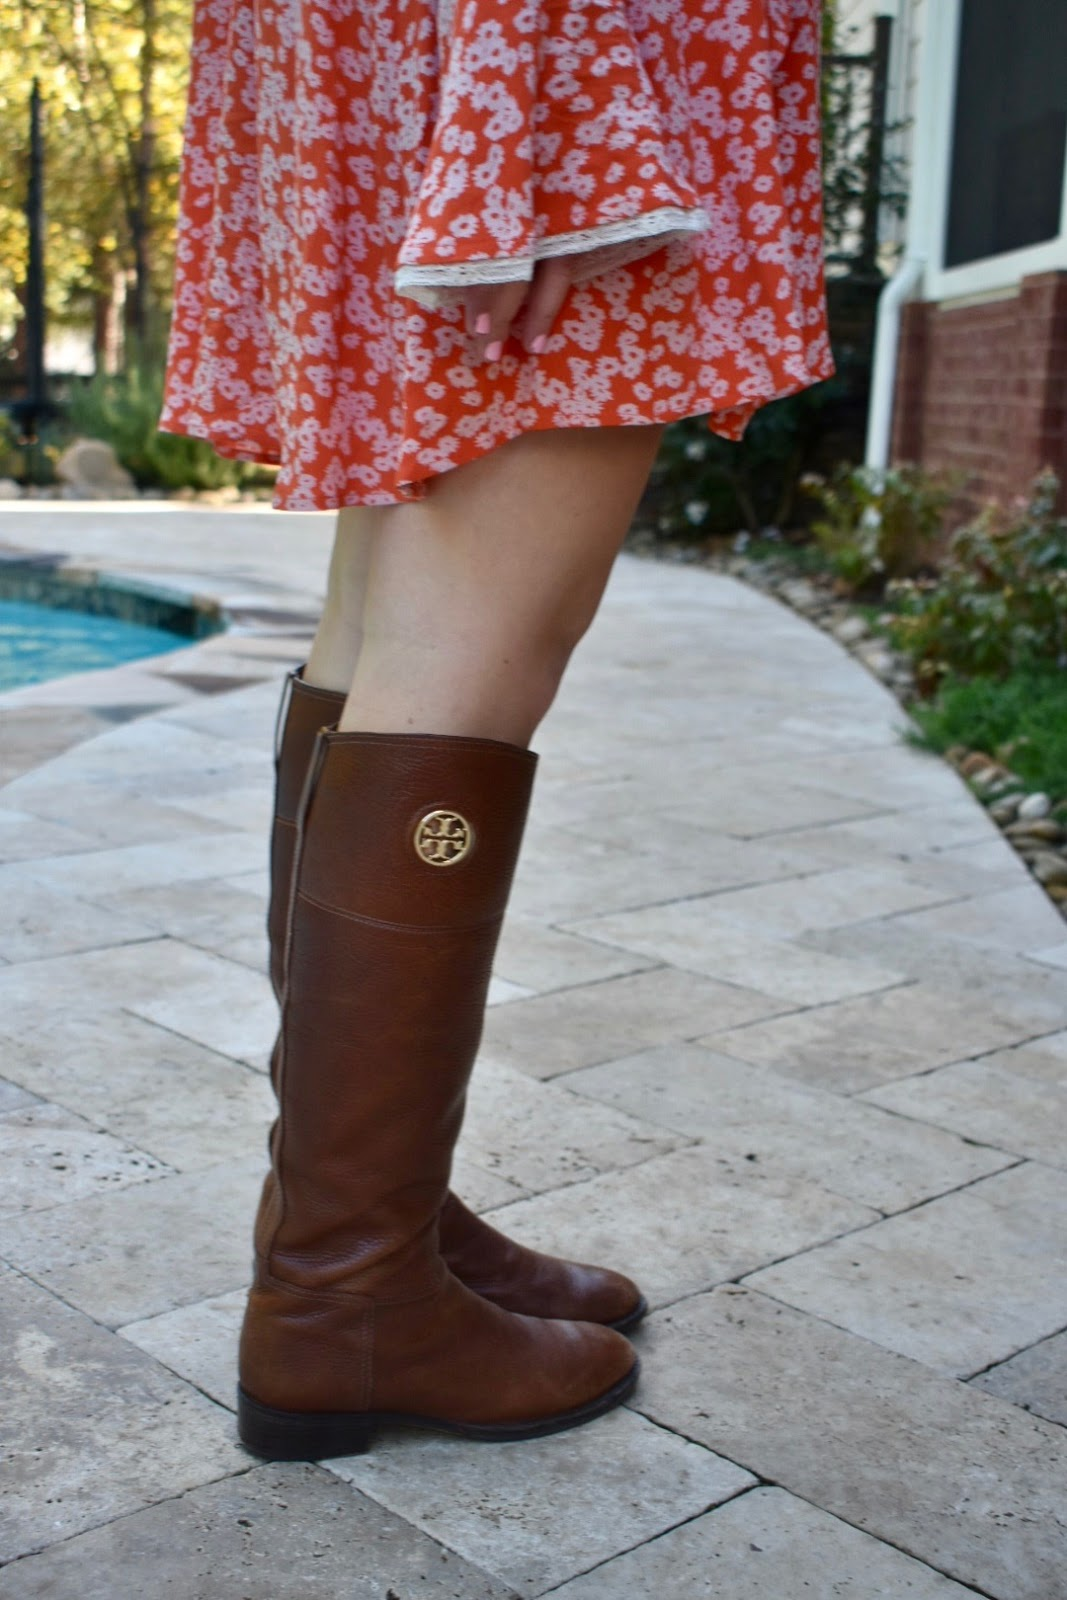 Dress: Free People Riding Boots: Tory Burch (similar) Monogram Necklace:  Local Boutique (similar)